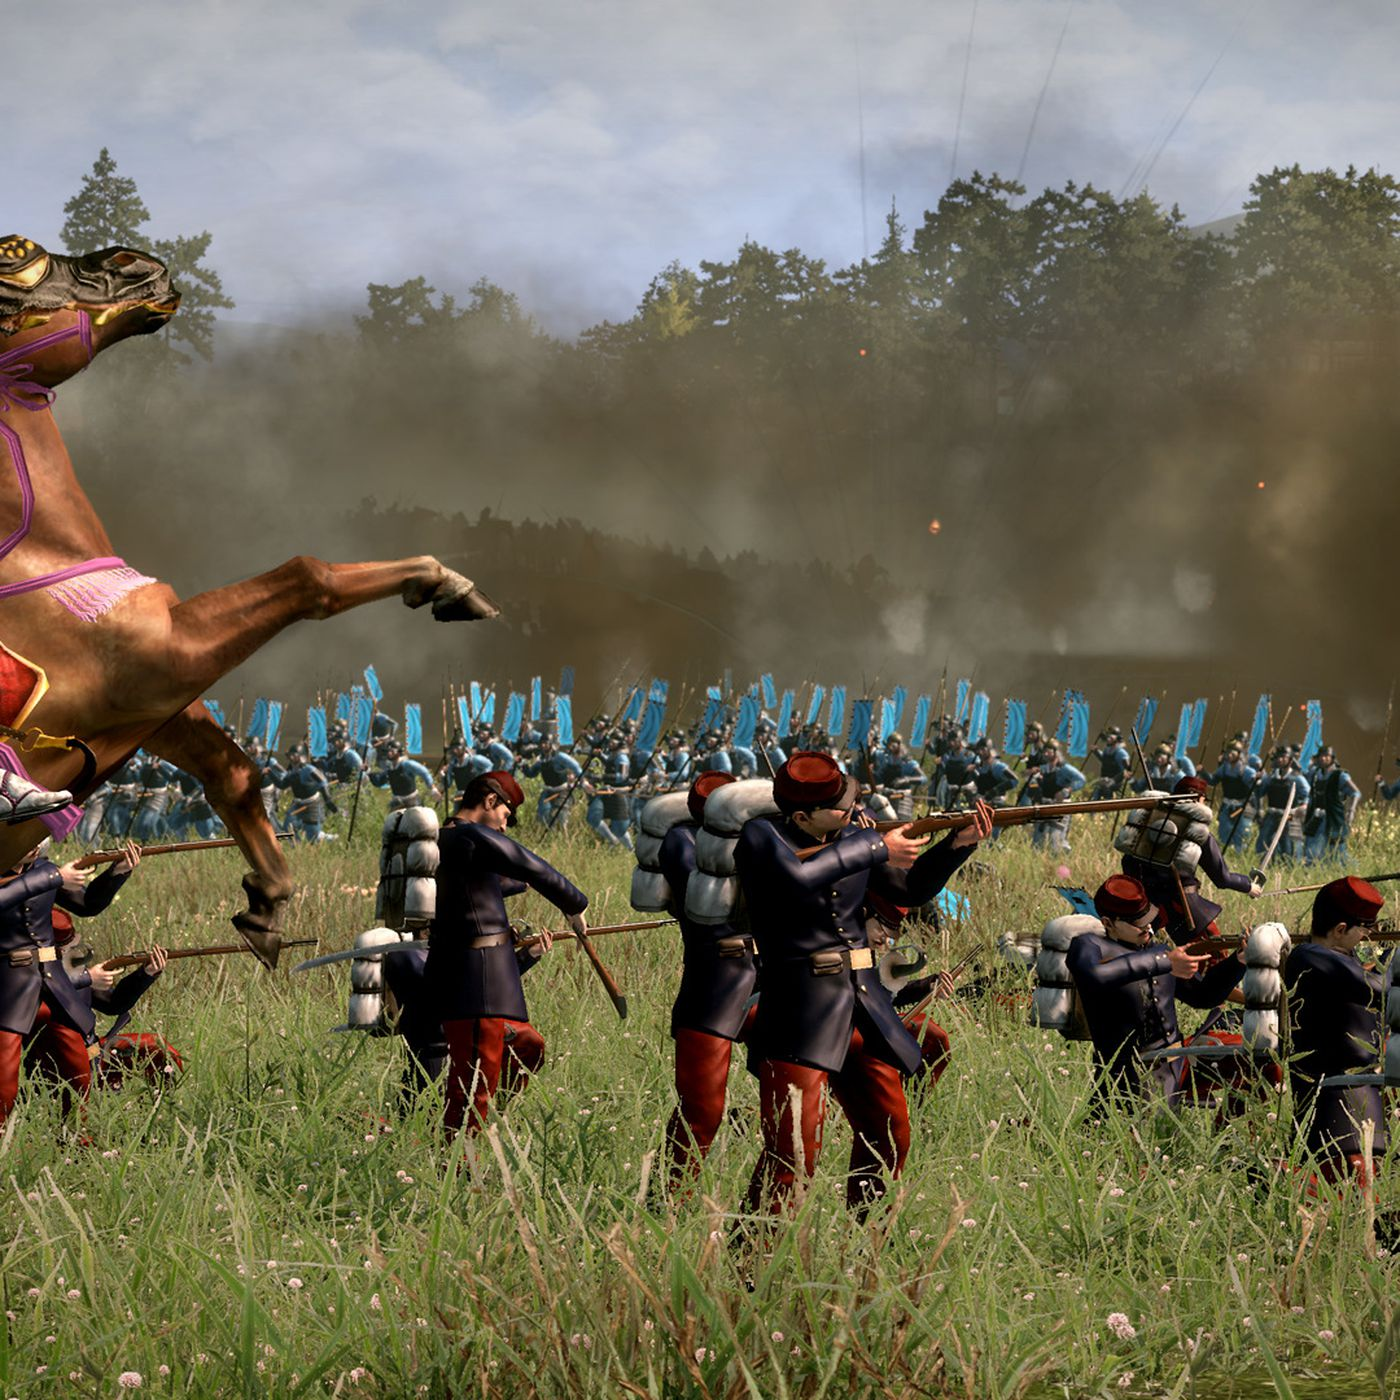 Total War: Shogun 2 hits Mac in spring - Polygon